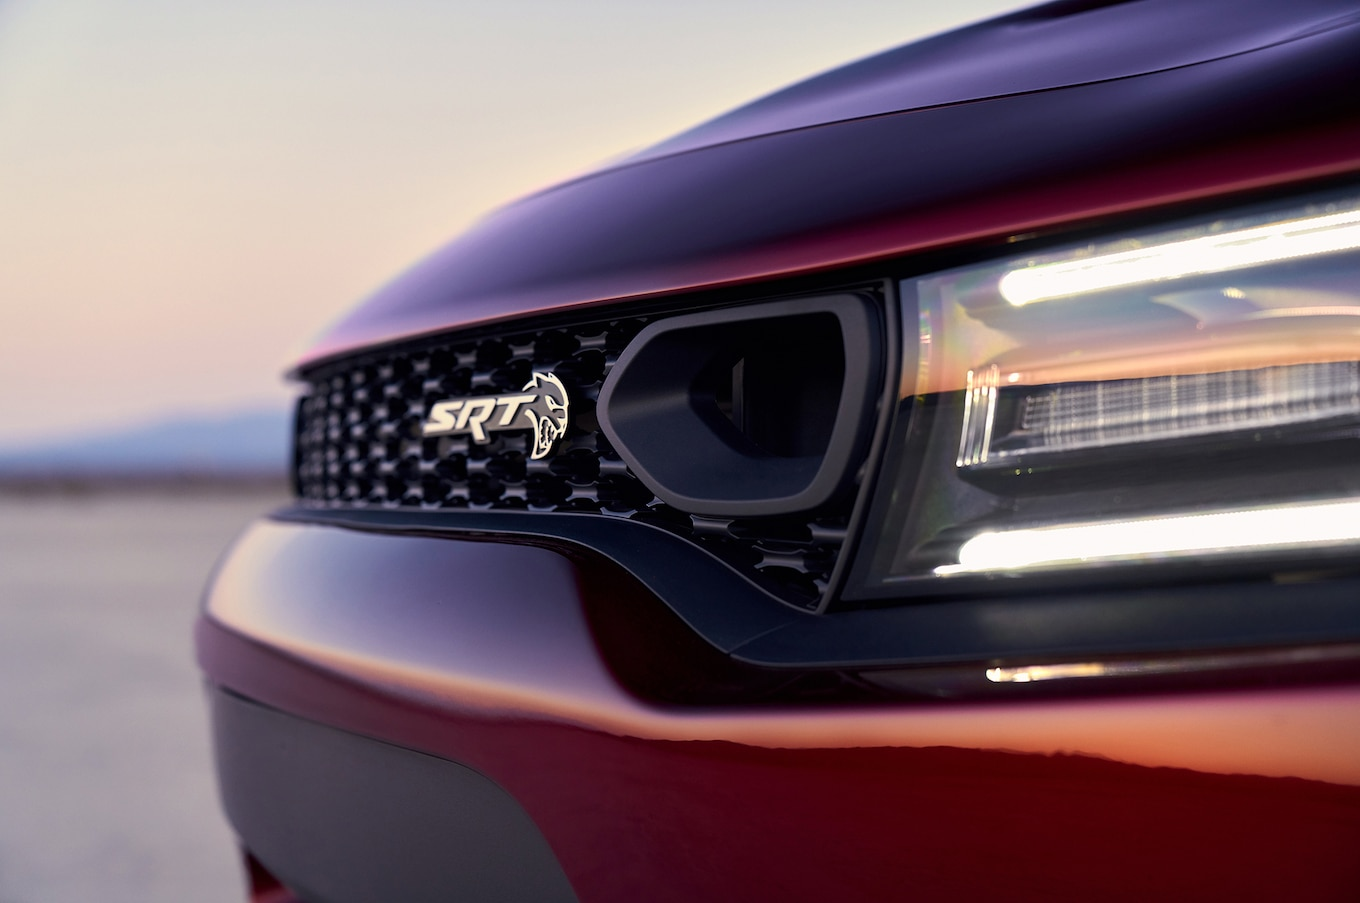 2019 Dodge Charger SRT Hellcat Grill Wallpaper (6)